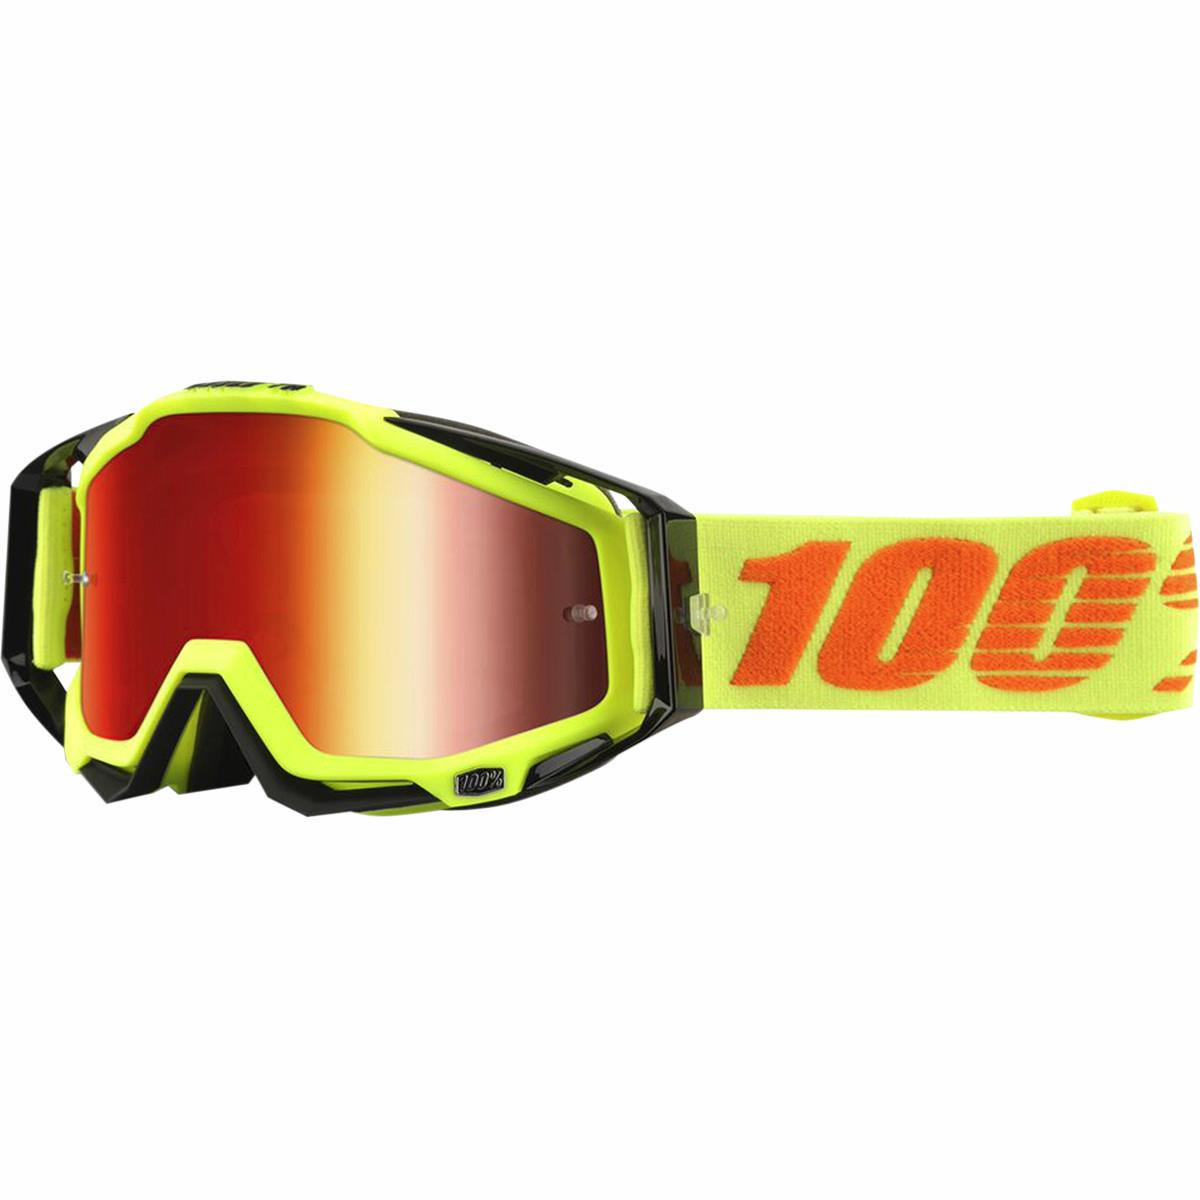 100% Racecraft Goggles Attack Yellow / Clear Lens (Yellow)